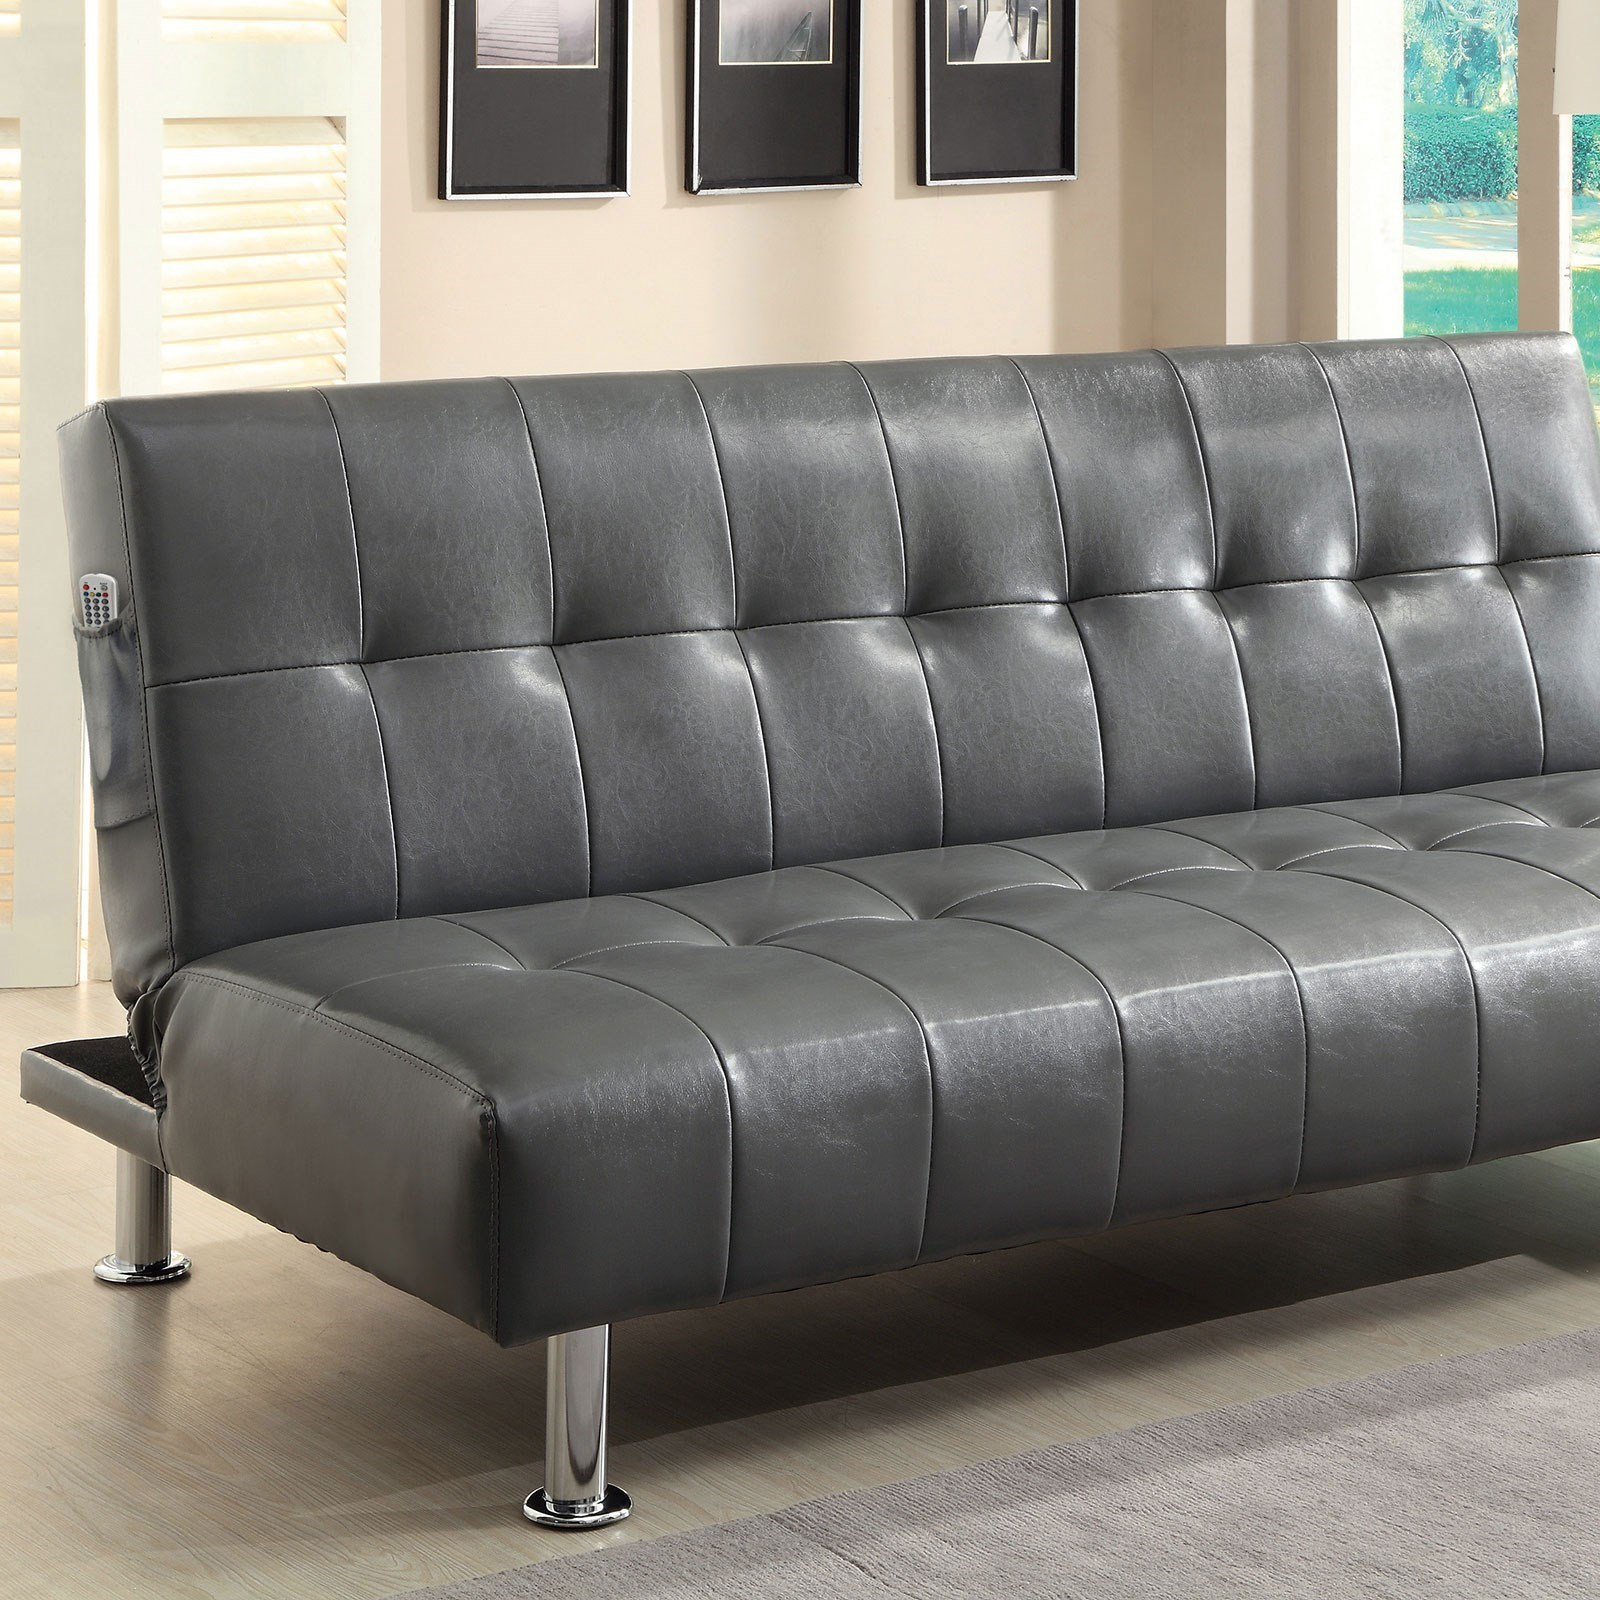 Bulle Leatherette Futon Sofa by Furniture of America at Nassau Furniture and Mattress